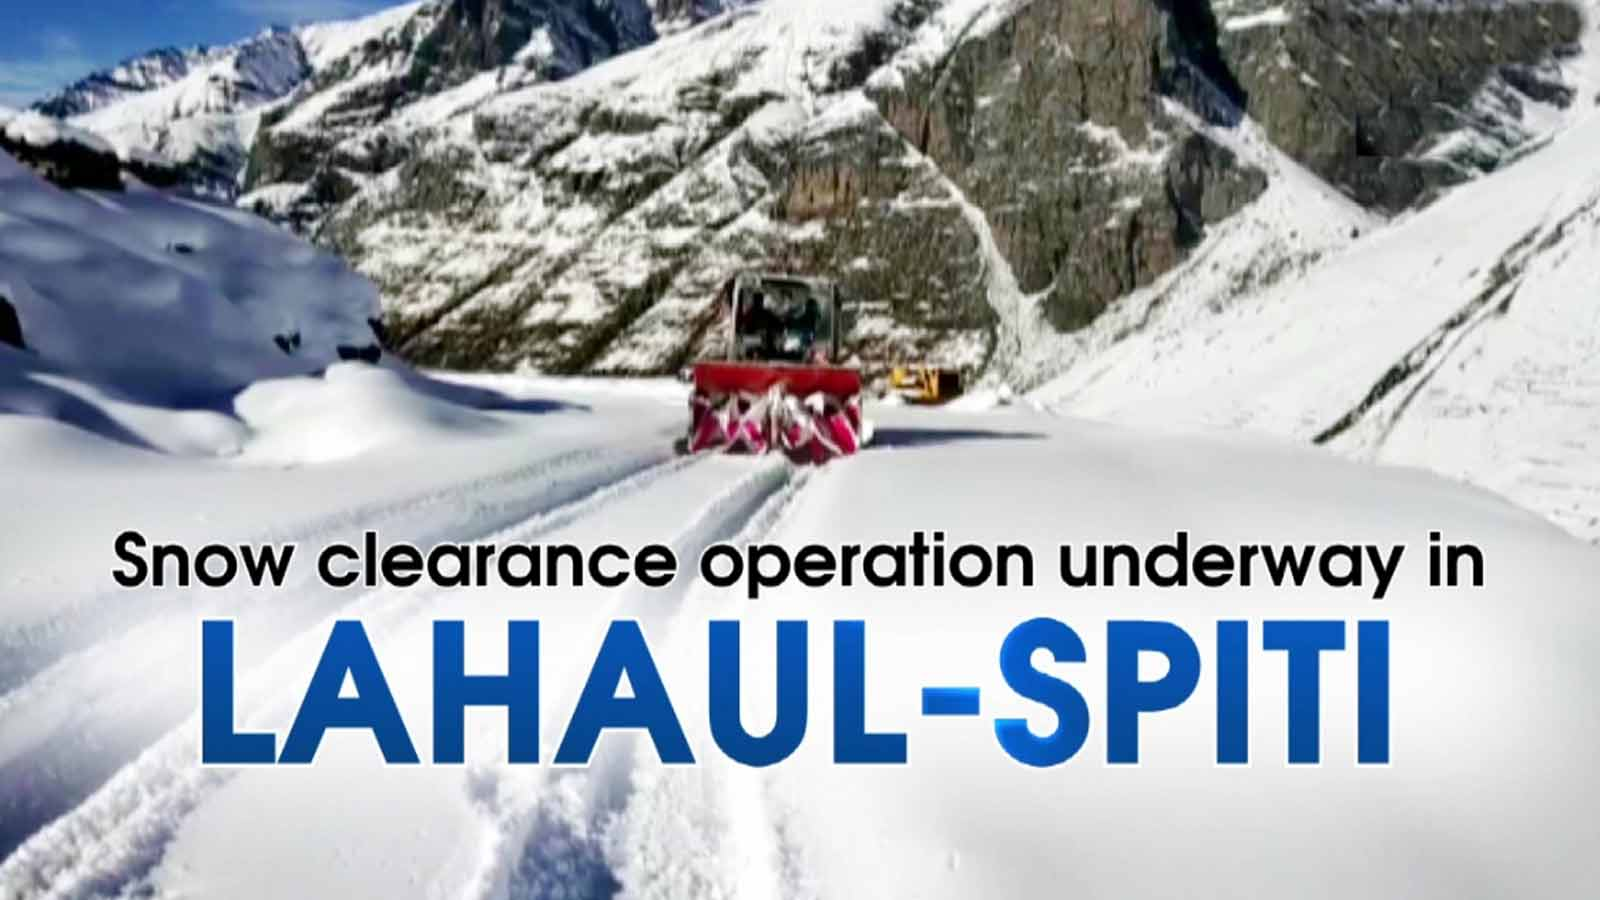 snow-clearance-operation-underway-in-lahaul-spiti